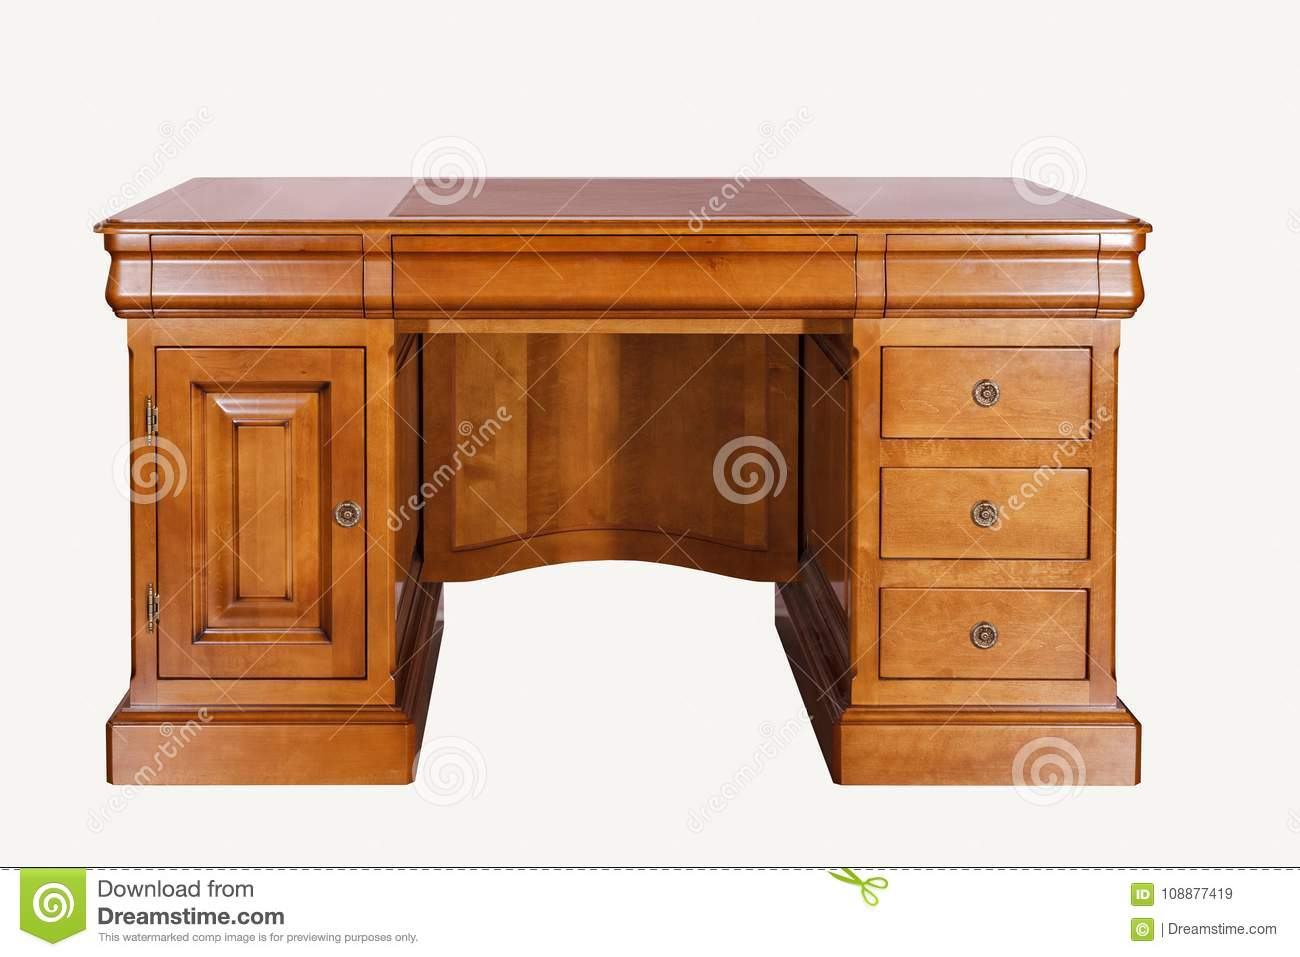 Furniture Style Design Interior Room Cupboard Stock Image - Image of ...